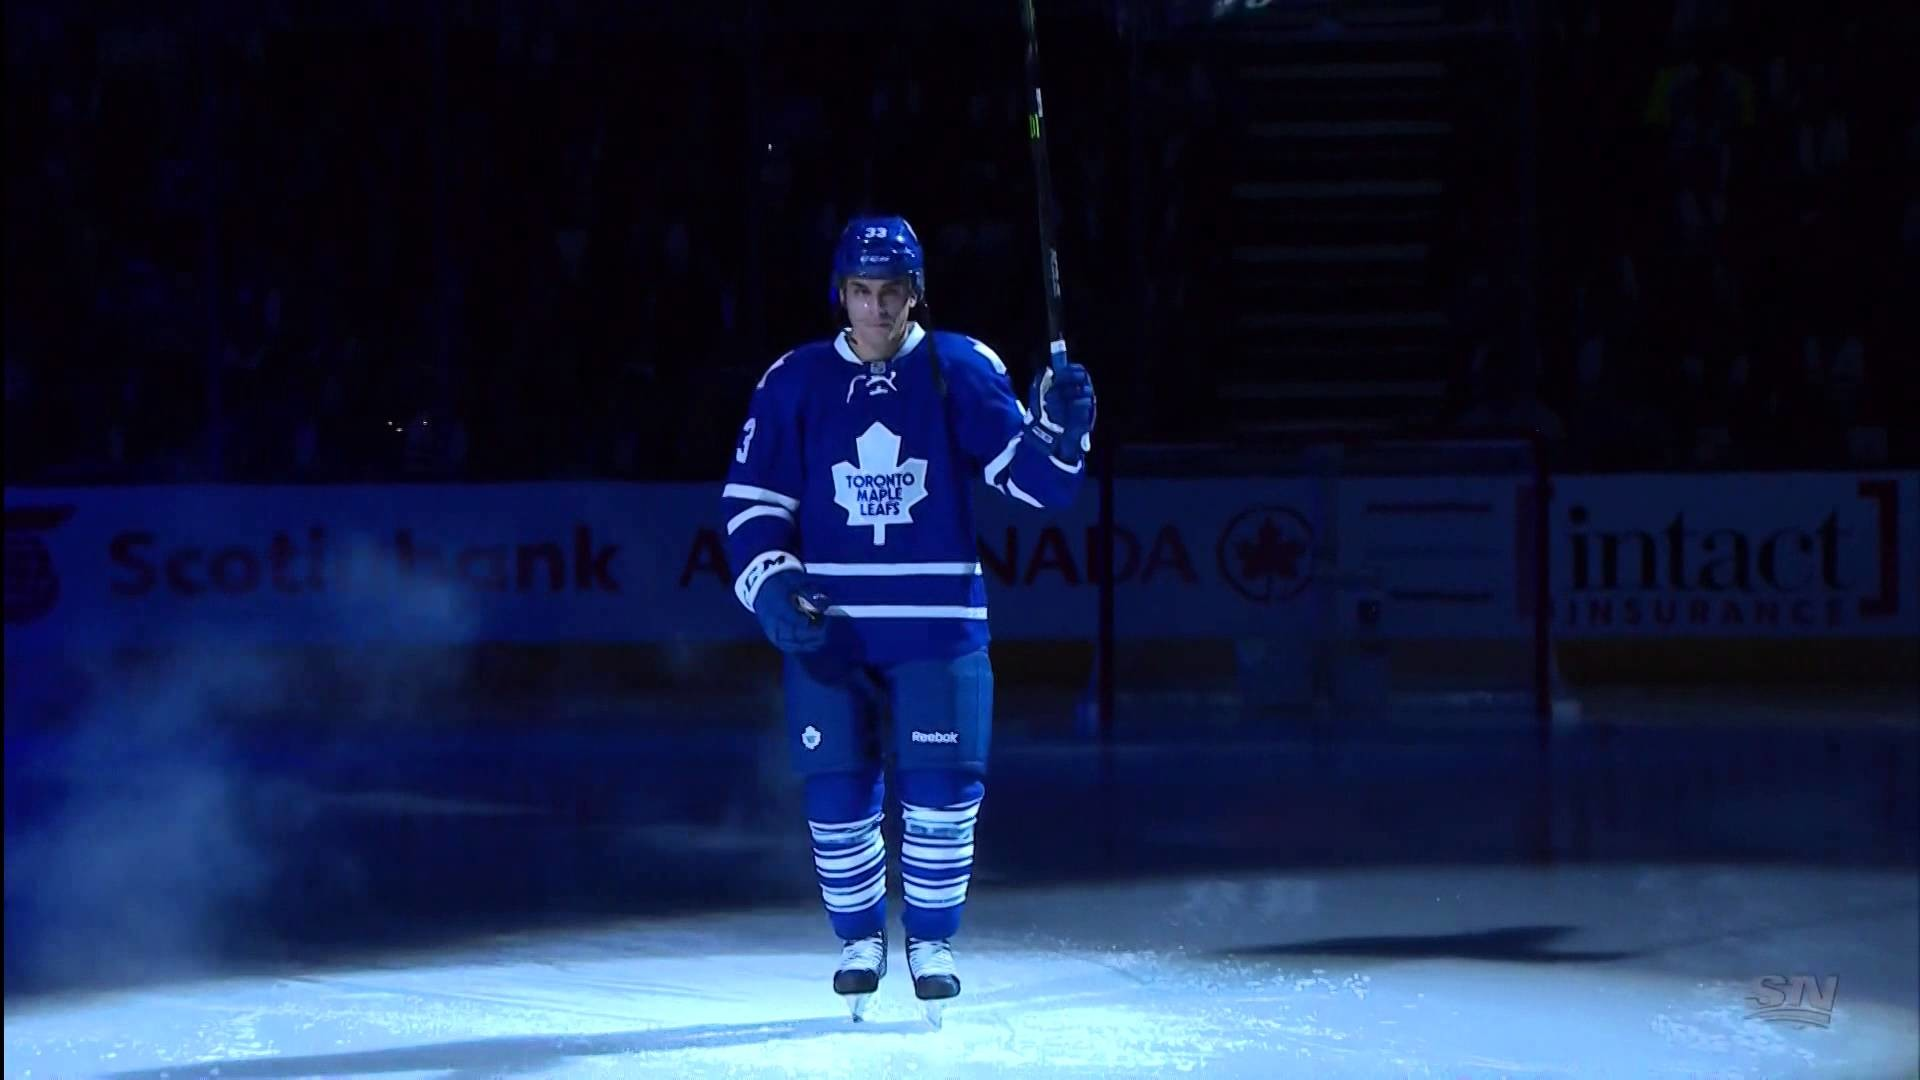 1920x1080 Toronto Maple Leafs 99th Season Opener - Player Introductions - Oct 7th  2015 (HD) - YouTube